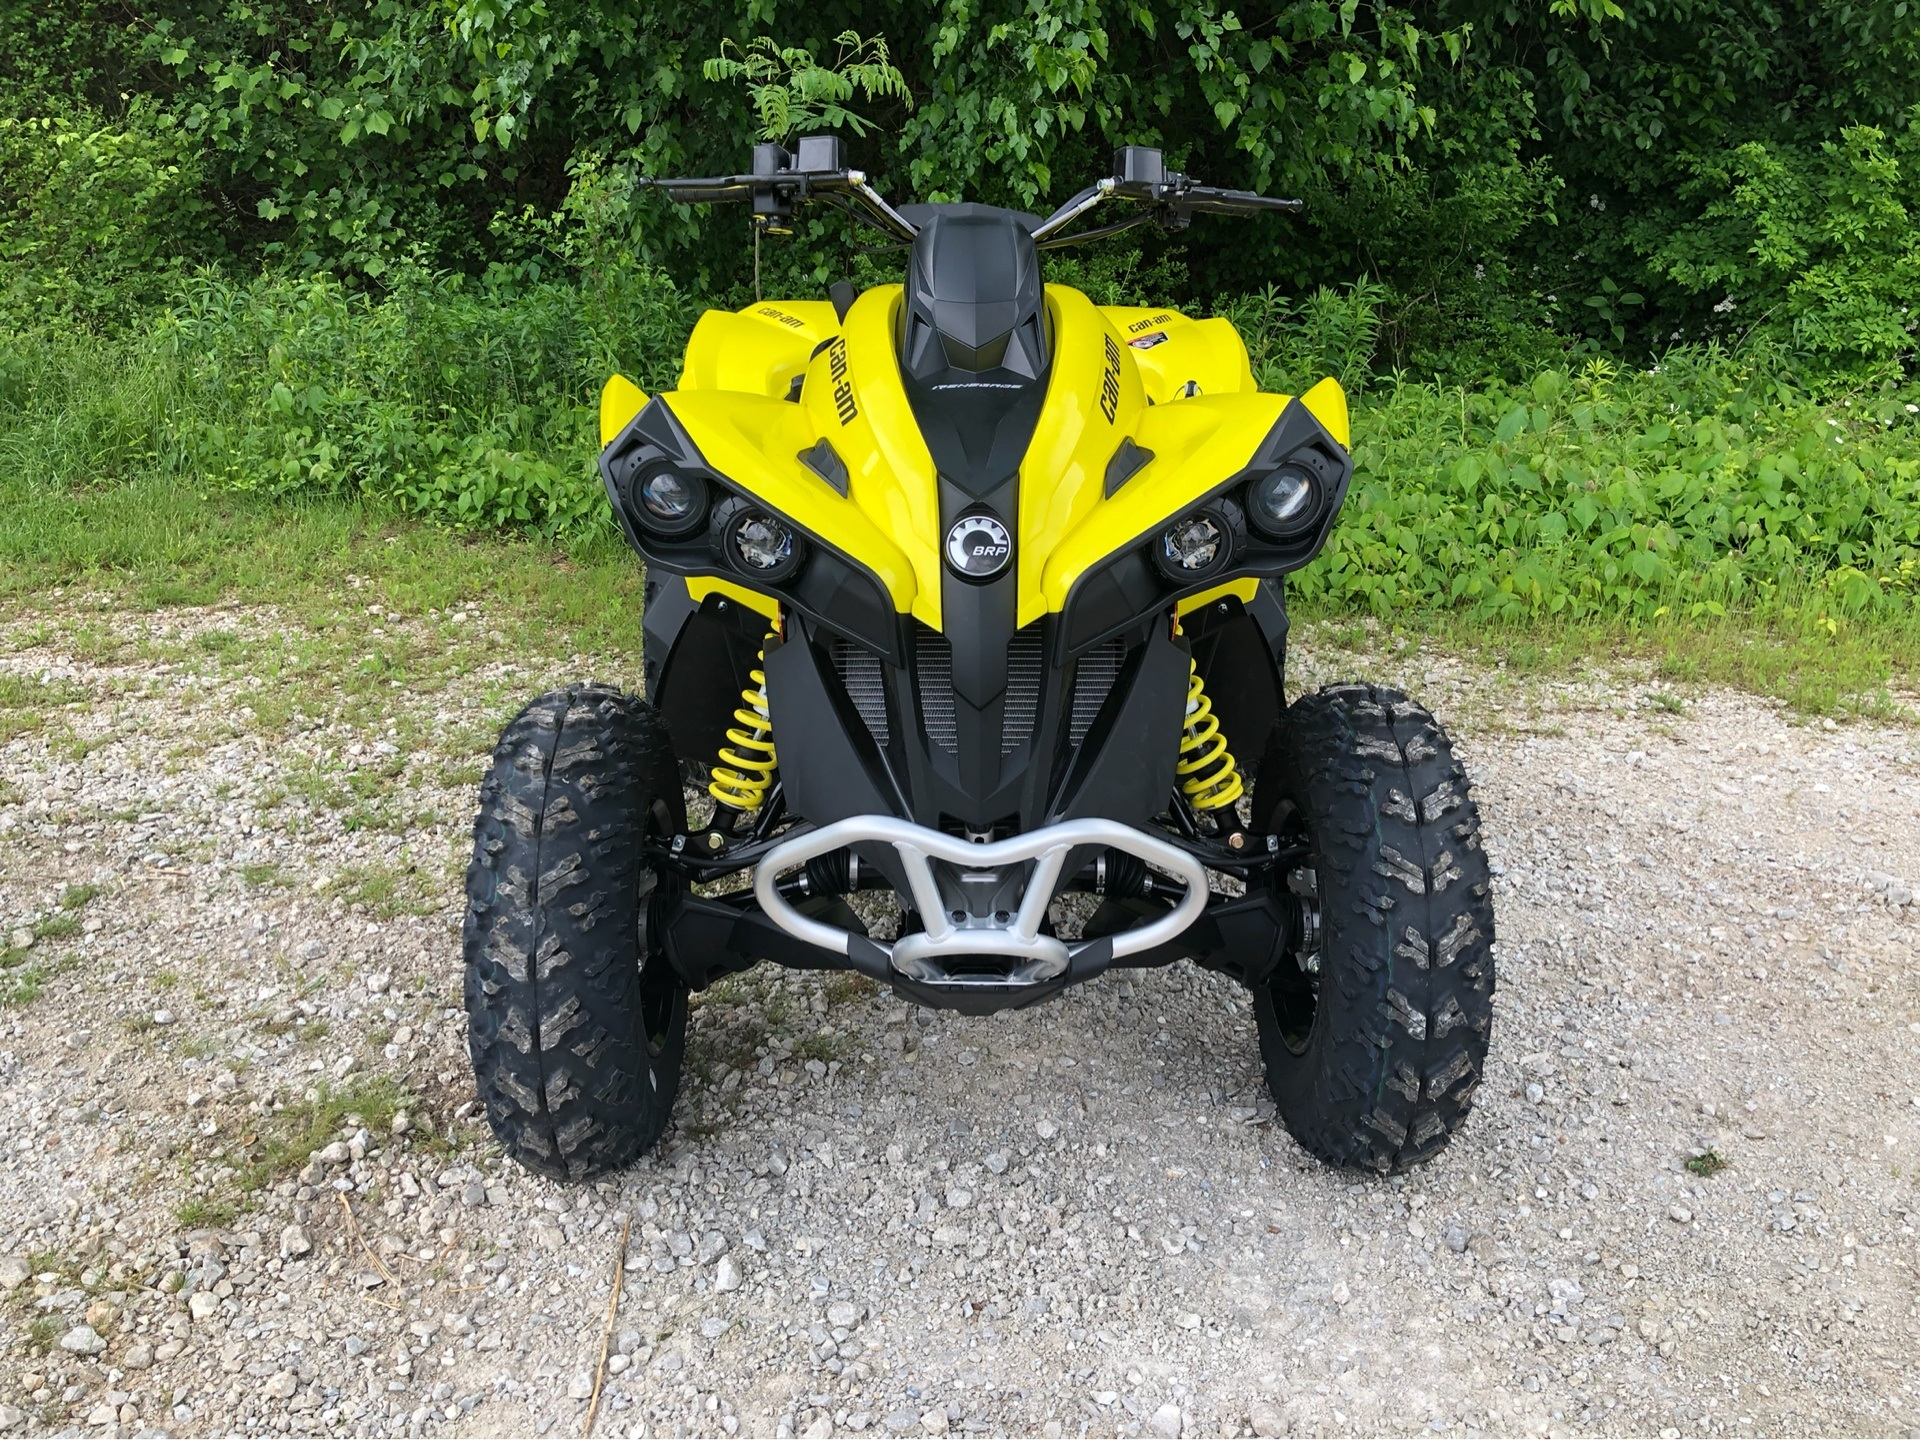 2019 Can-Am Renegade 1000R in Harrison, Arkansas - Photo 3